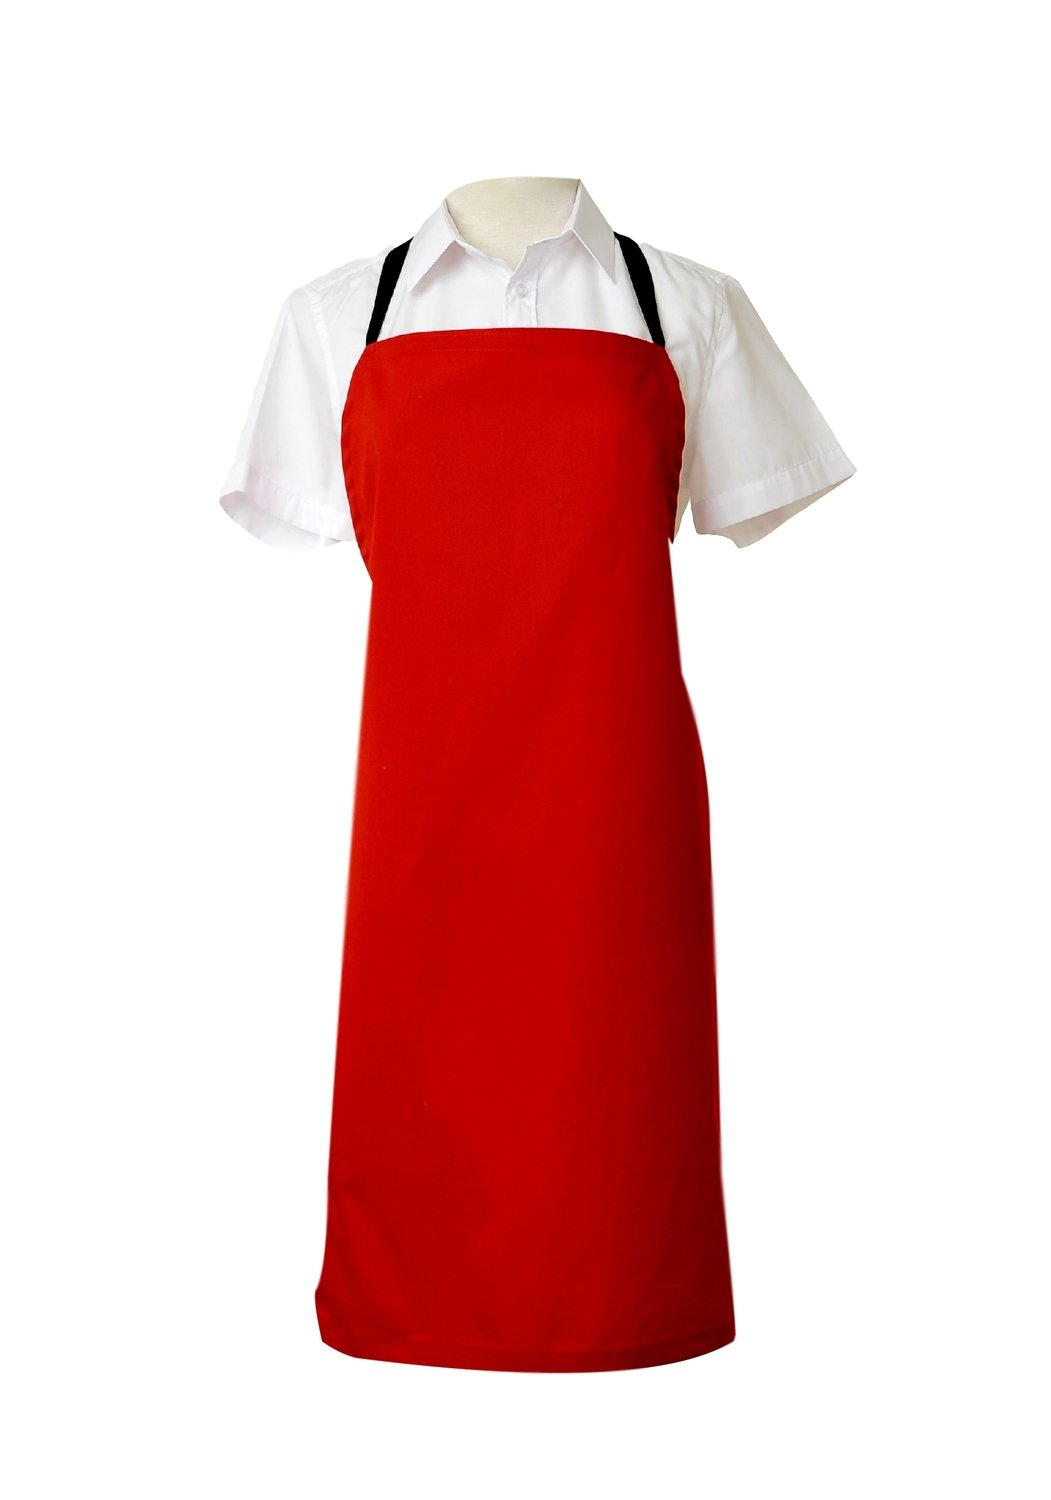 Polycotton Apron 4-6 Years (Extra Small)